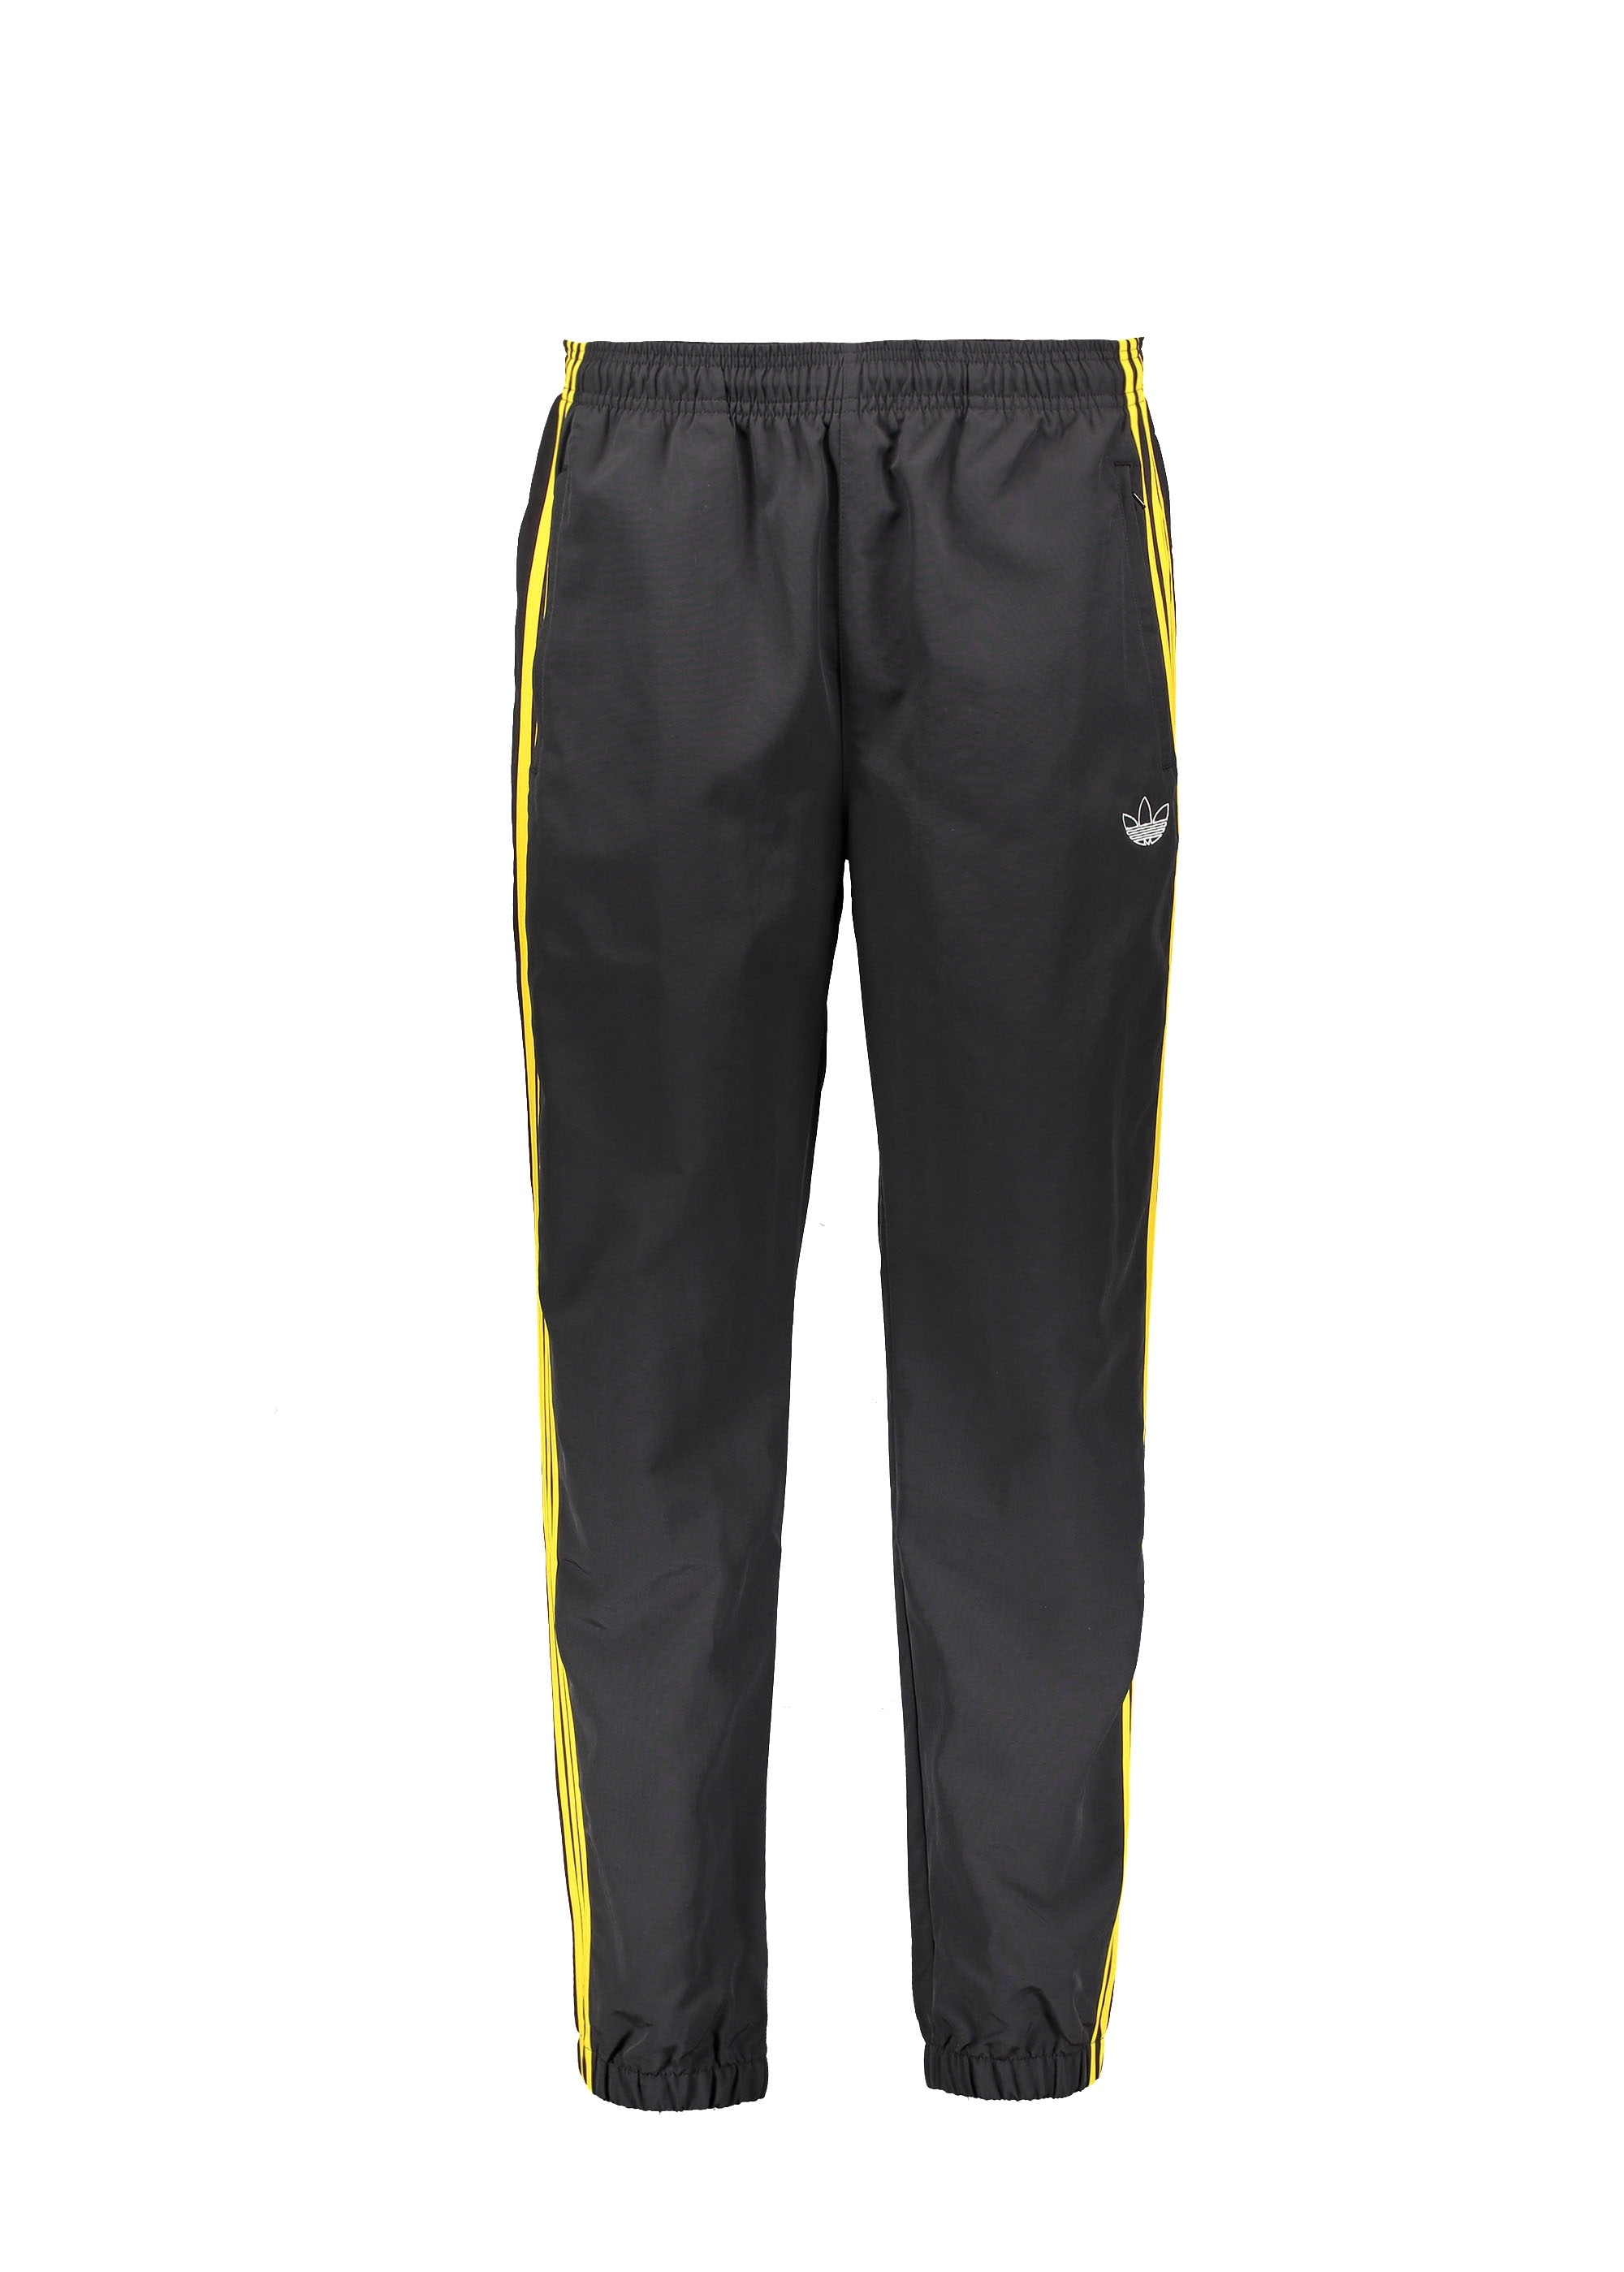 1c940d33 adidas Originals Apparel Tourney Warm Up Pants - Black / Yellow ...